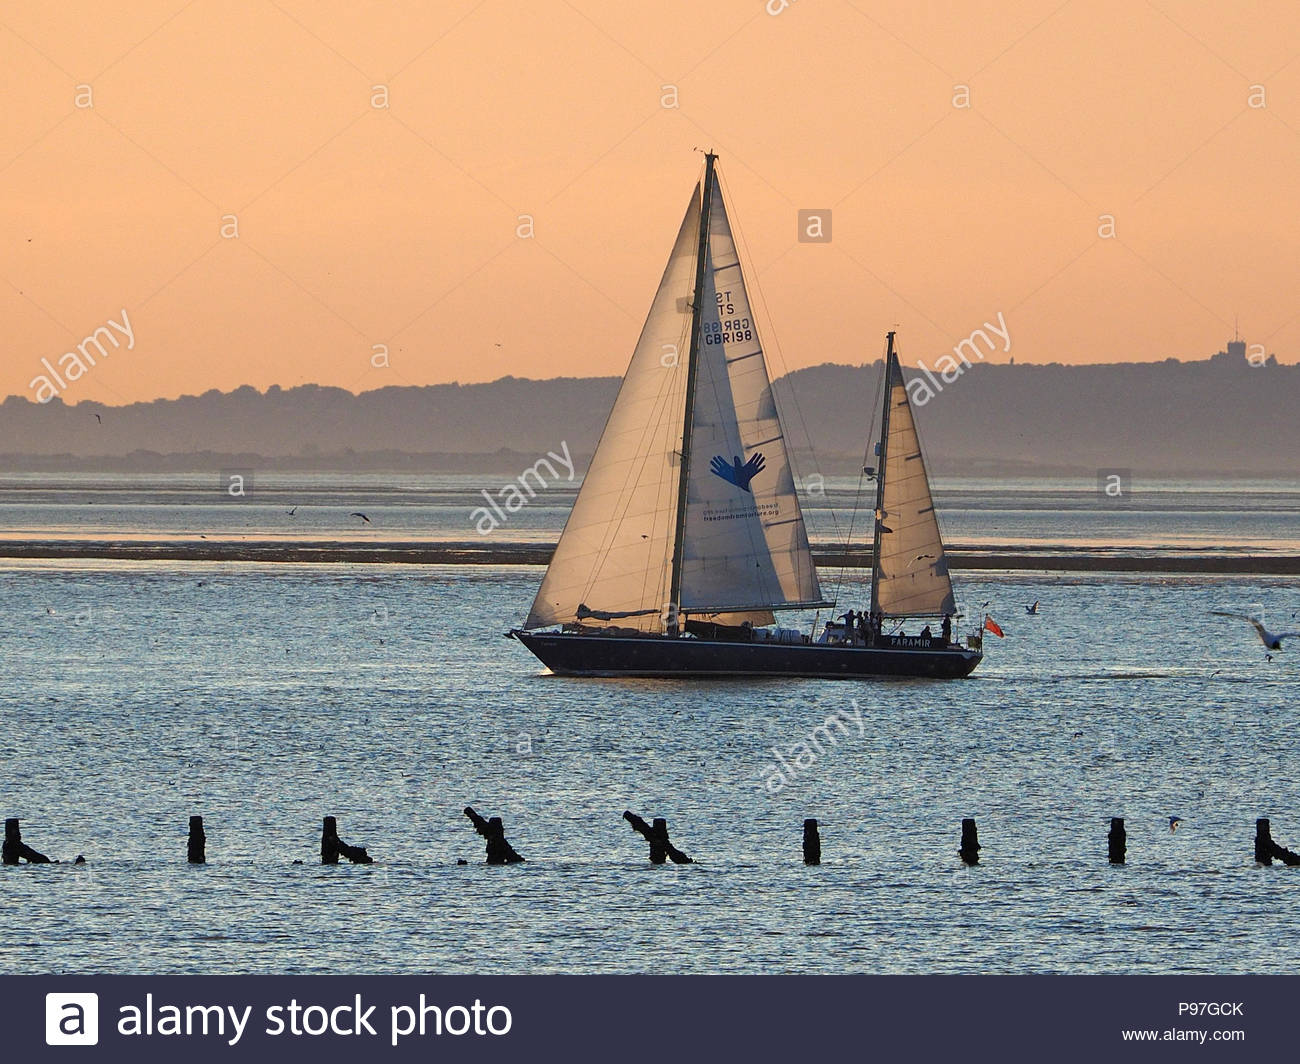 Sheerness, Kent, UK. 15th July, 2018. UK Weather: the yacht 'Faramir' as it arrives at Garrison Point, Sheerness at sunset. The 23m / 75ft yacht Faramir is a Bermudan ketch operated by the Cirdan Sailing Trust which provides challenge and adventure for young people. Credit: James Bell/Alamy Live News - Stock Image